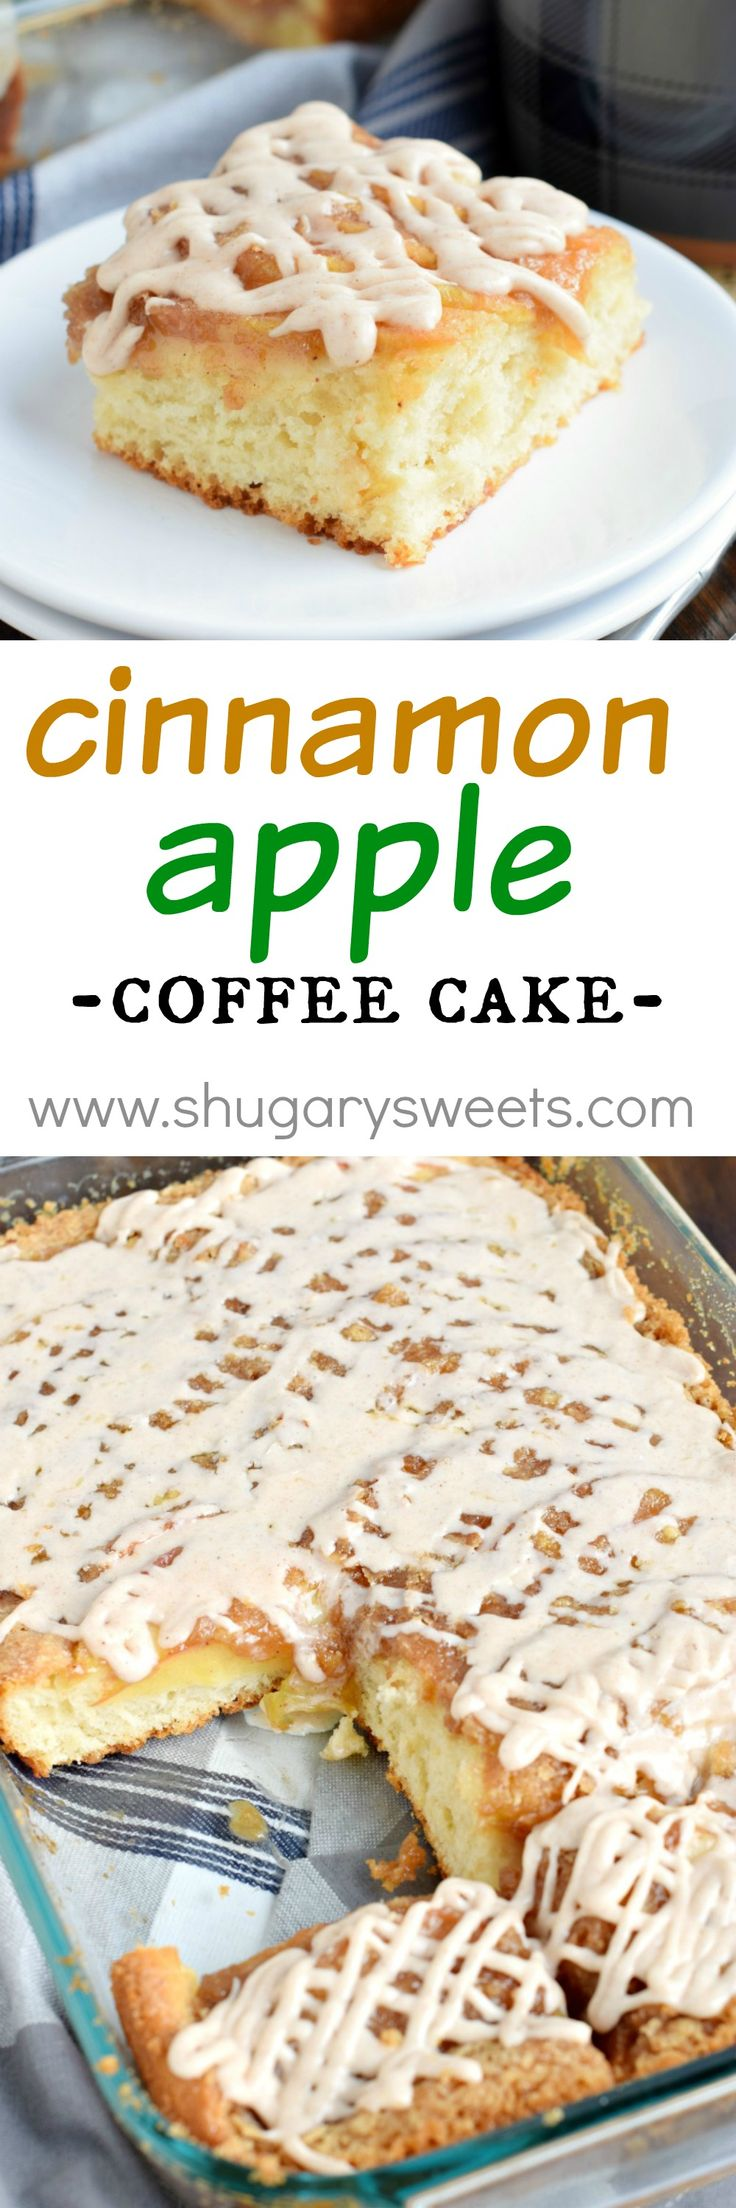 A delicious Cinnamon Apple Coffee Cake with the texture and flavor of cinnamon rolls! No need to shape or knead the delicious dough! Made with Fleischmann's Yeast! @BeABetterBaker #spon